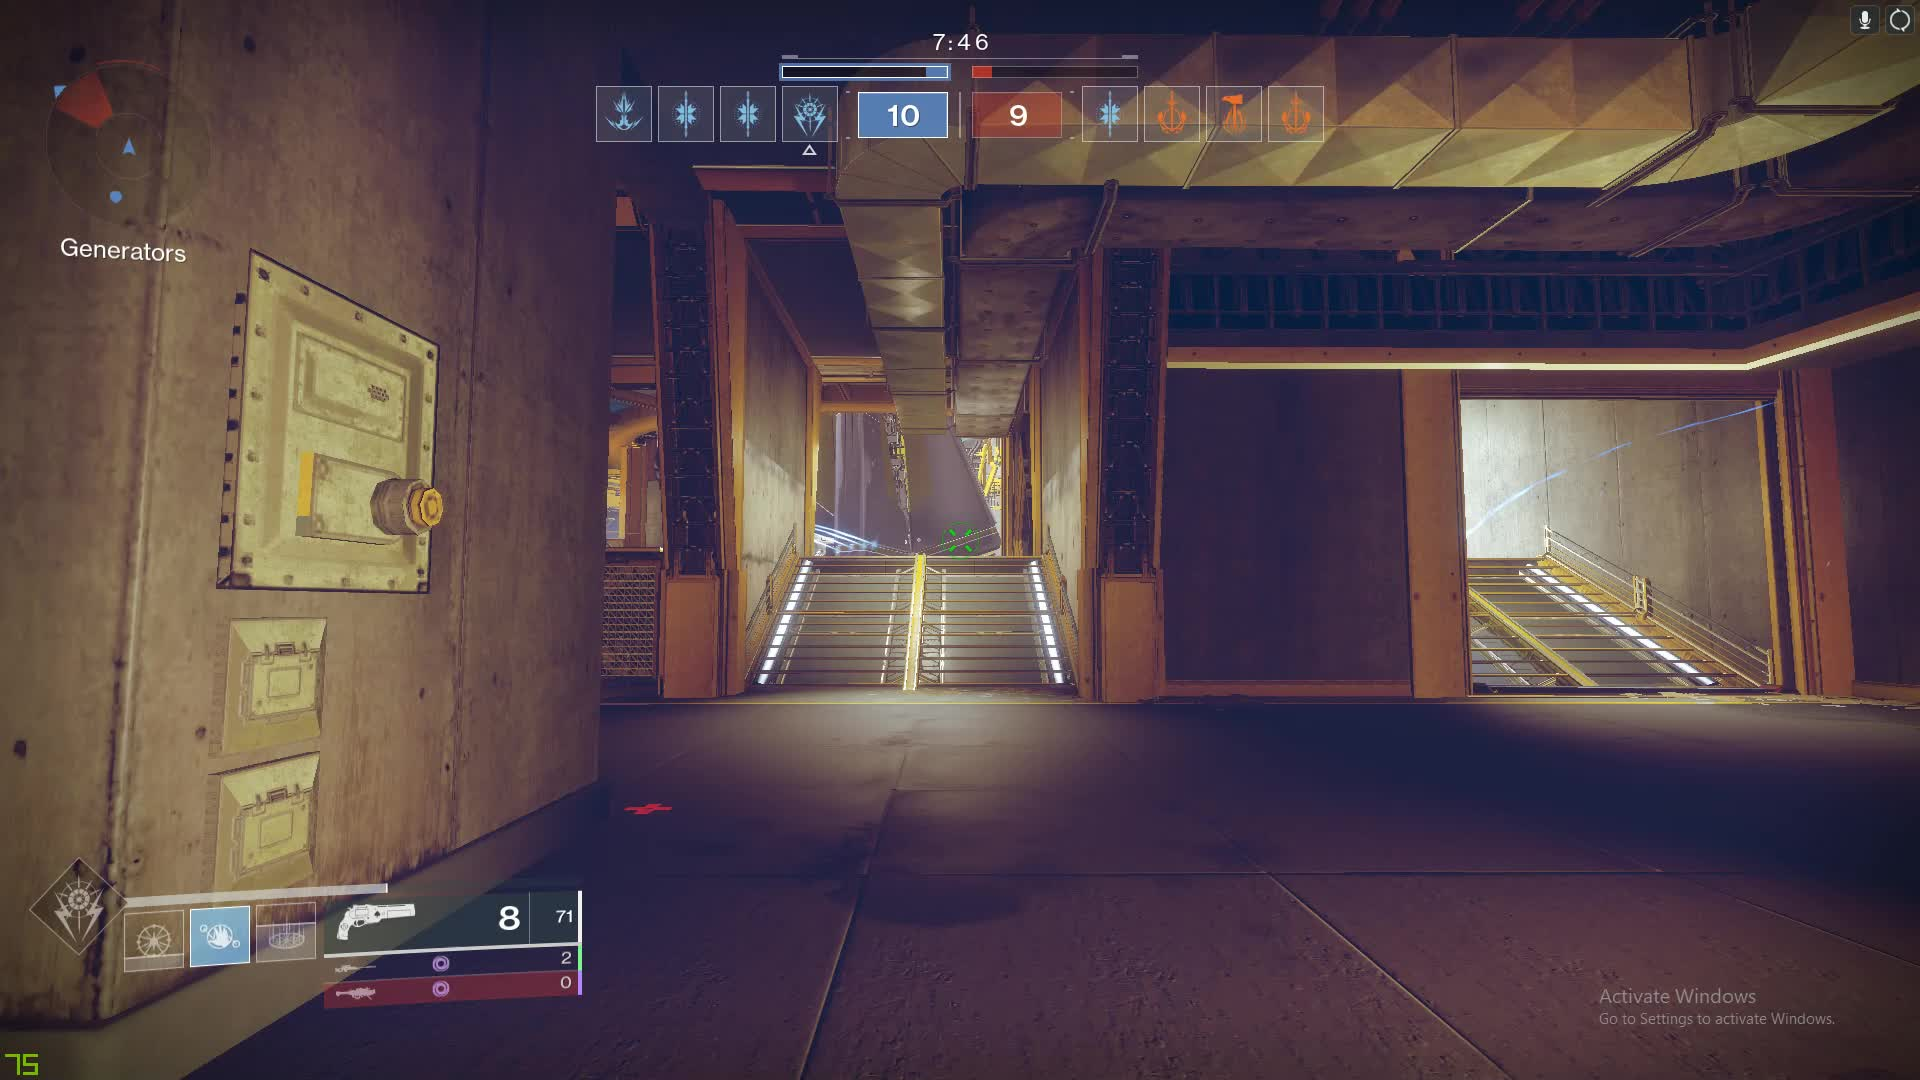 destiny2, vlc-record-2019-04-21-23h12m15s-Destiny 2 2019.04.20 - 18.08.08.03.DVR.mp4- GIFs